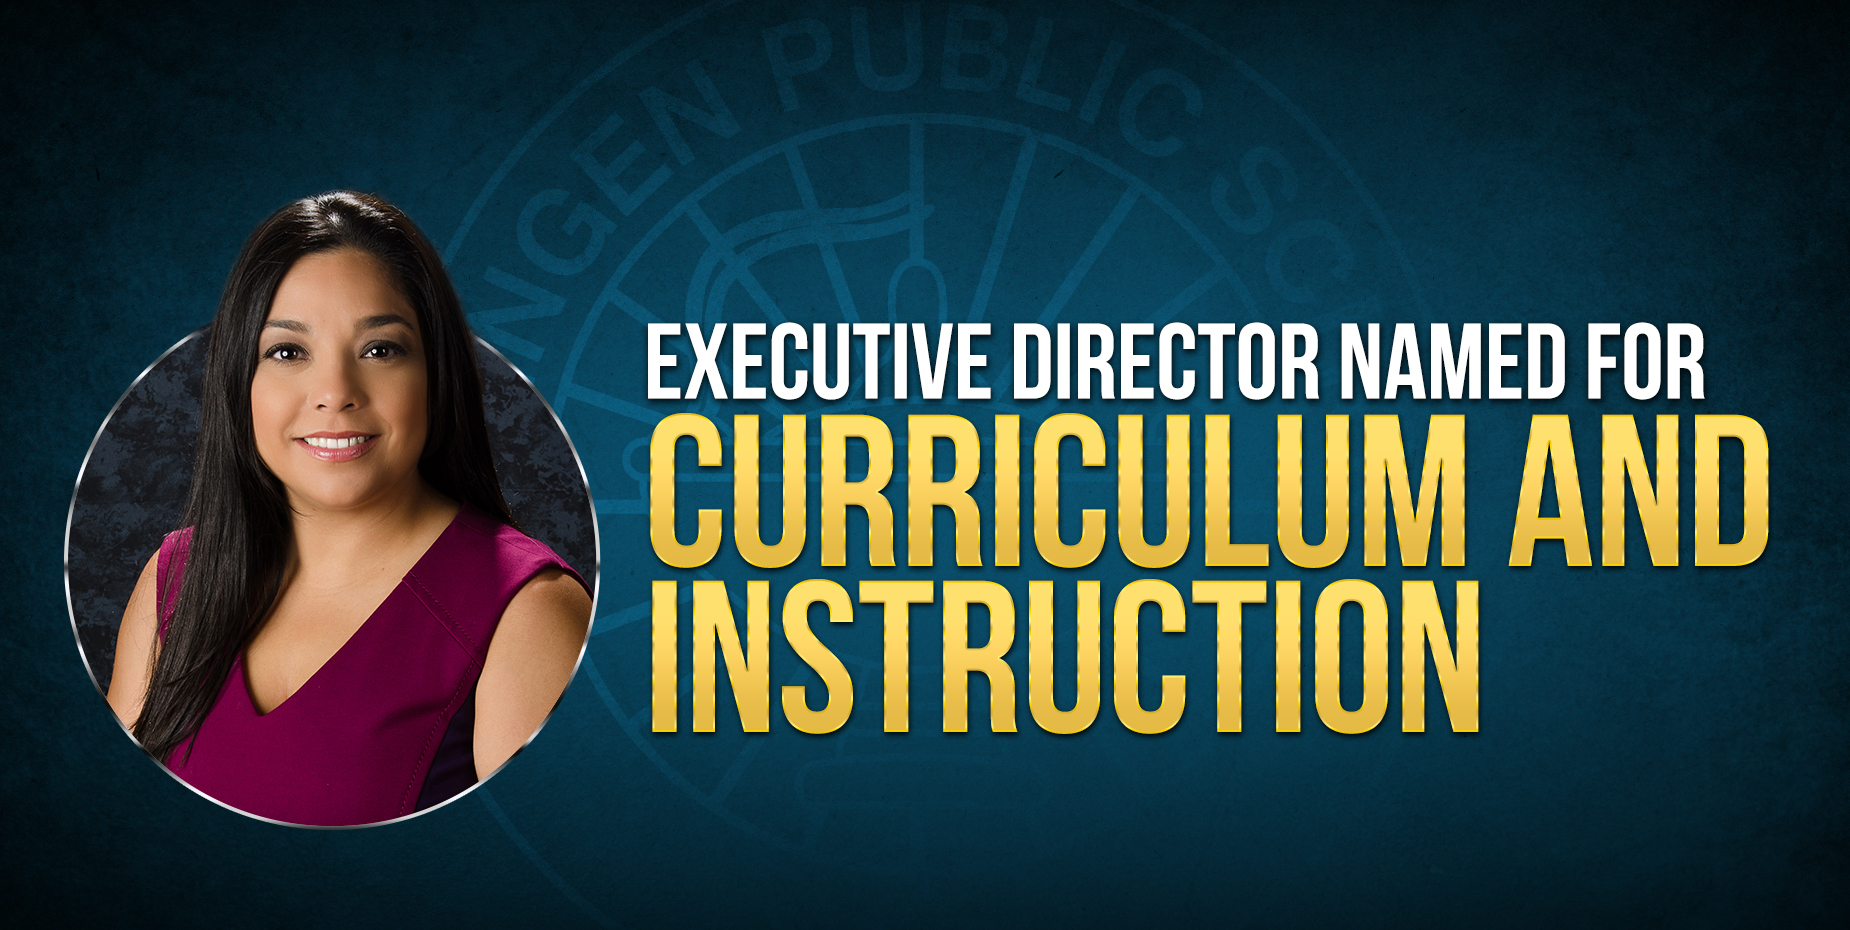 Executive Director named for Curriculum and Instruction